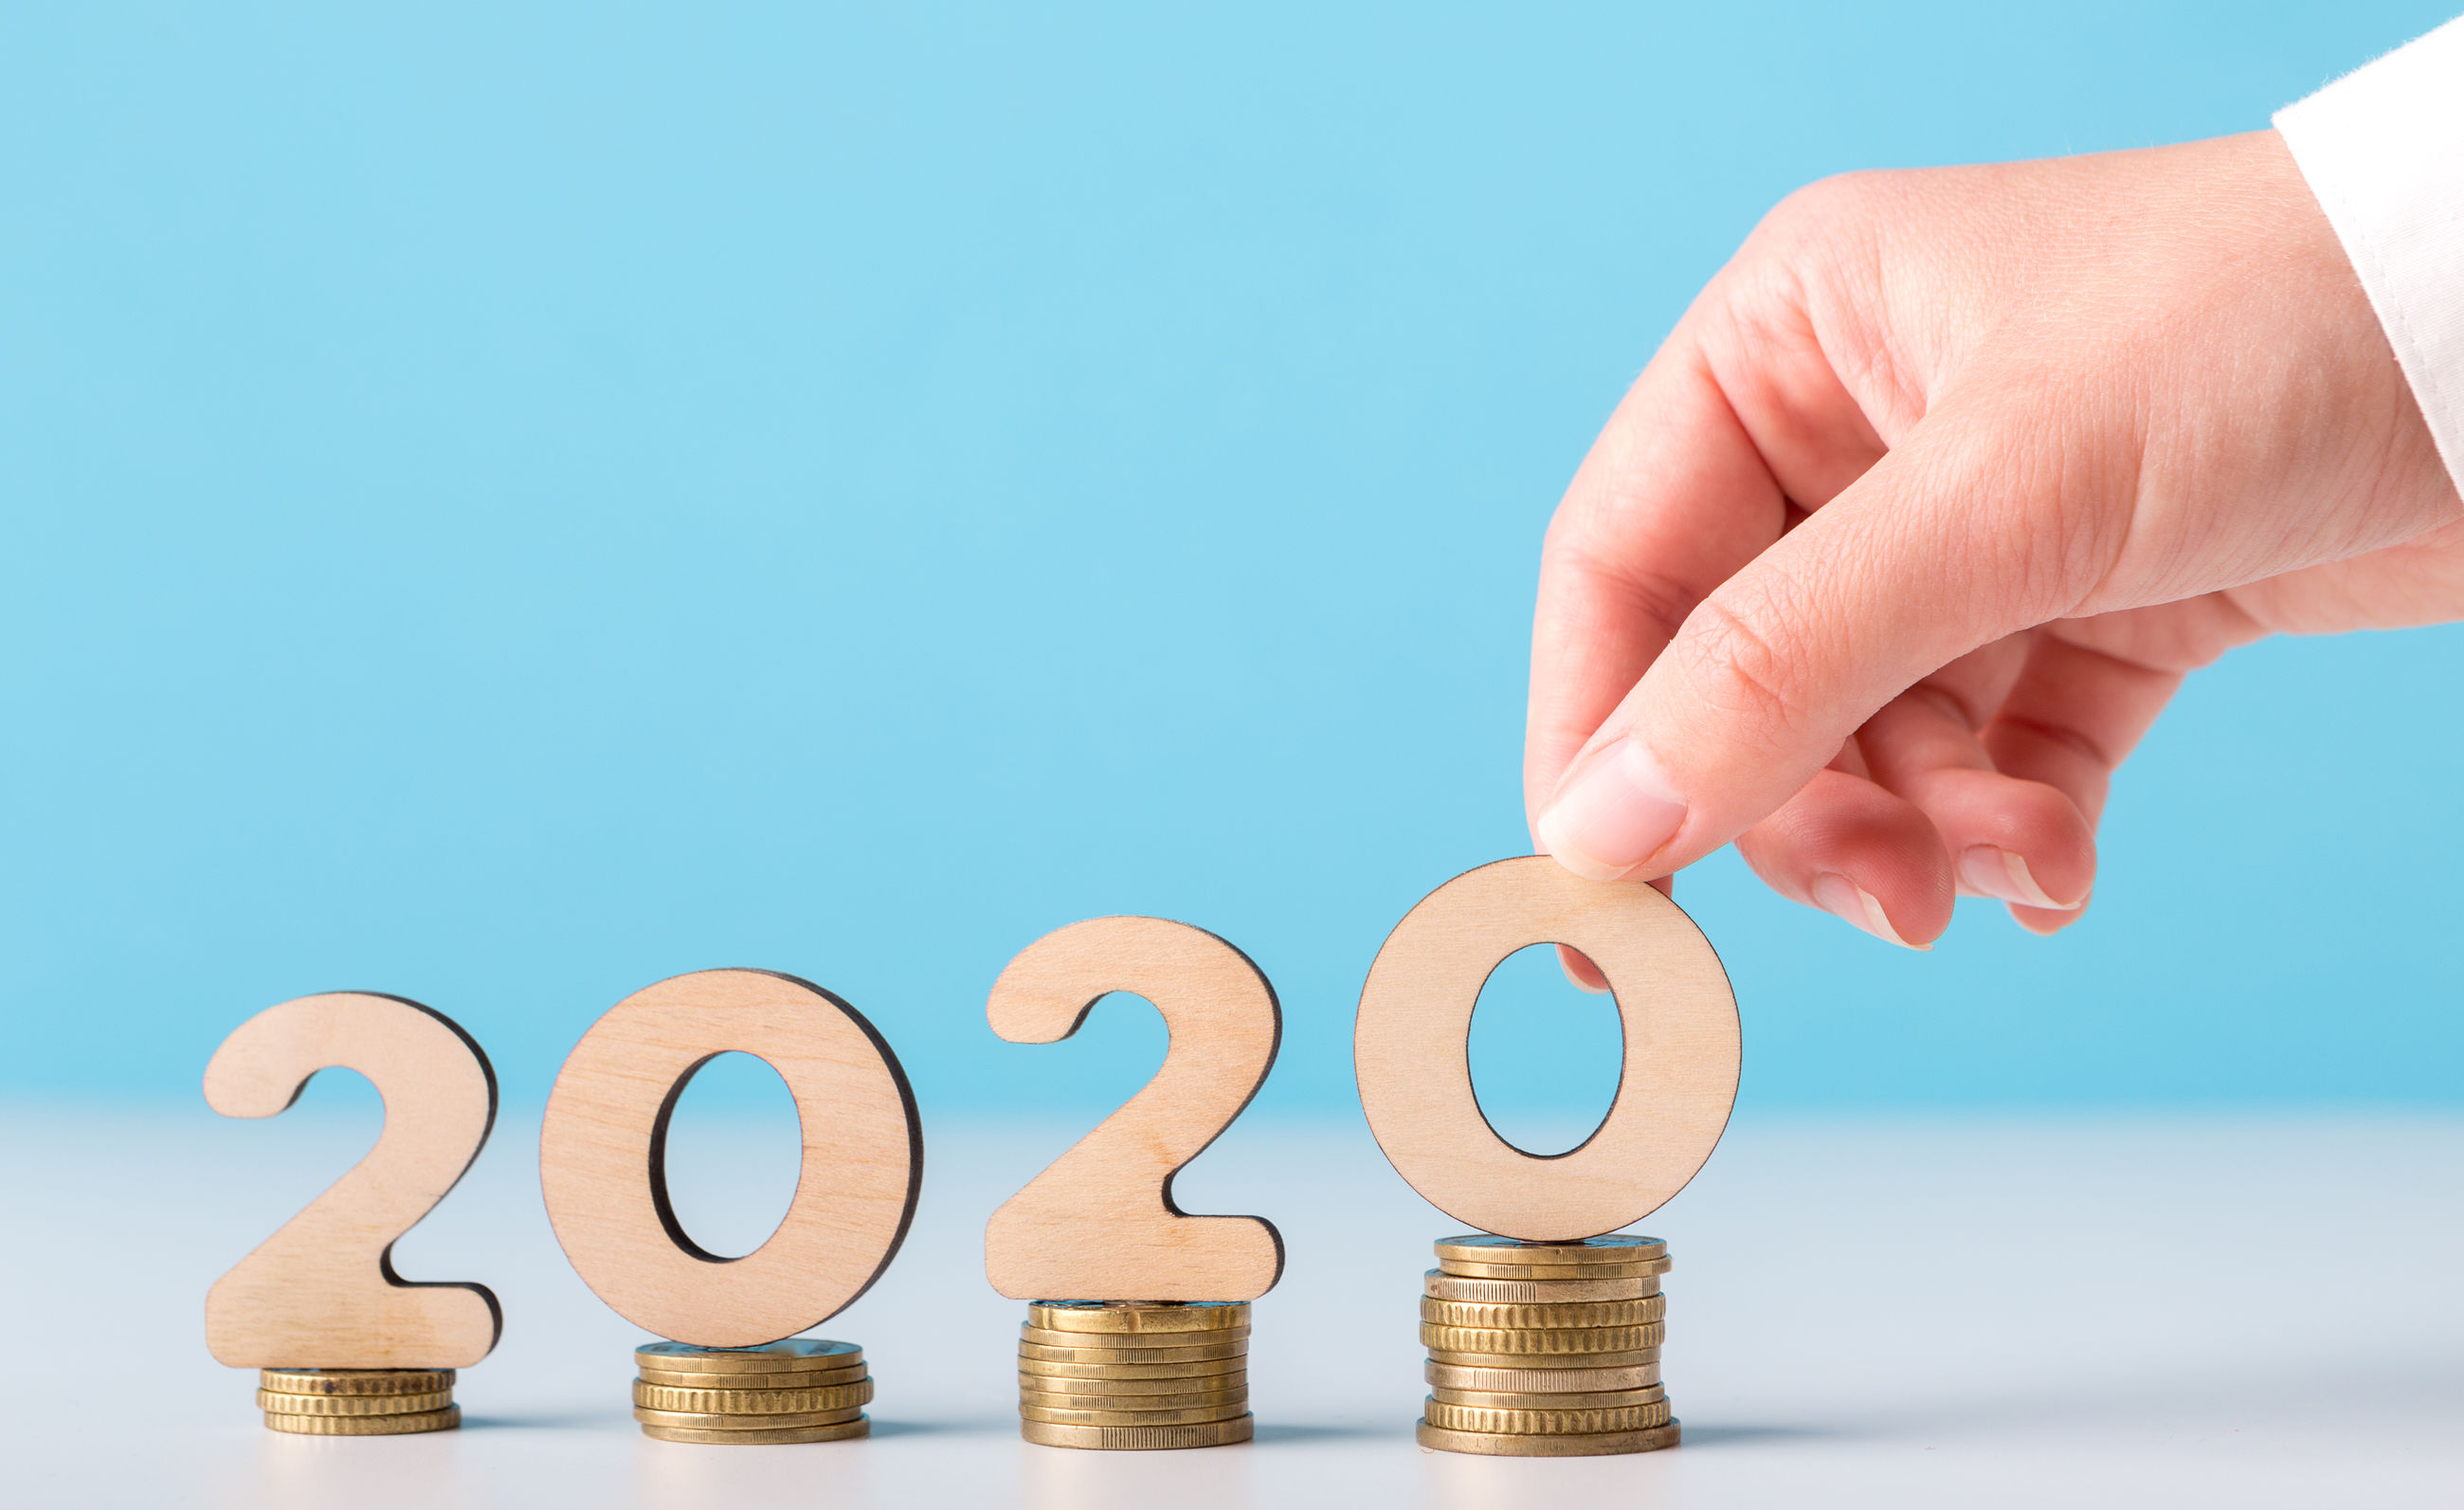 Cropped hand holding 2020 numbers on coins against blue background